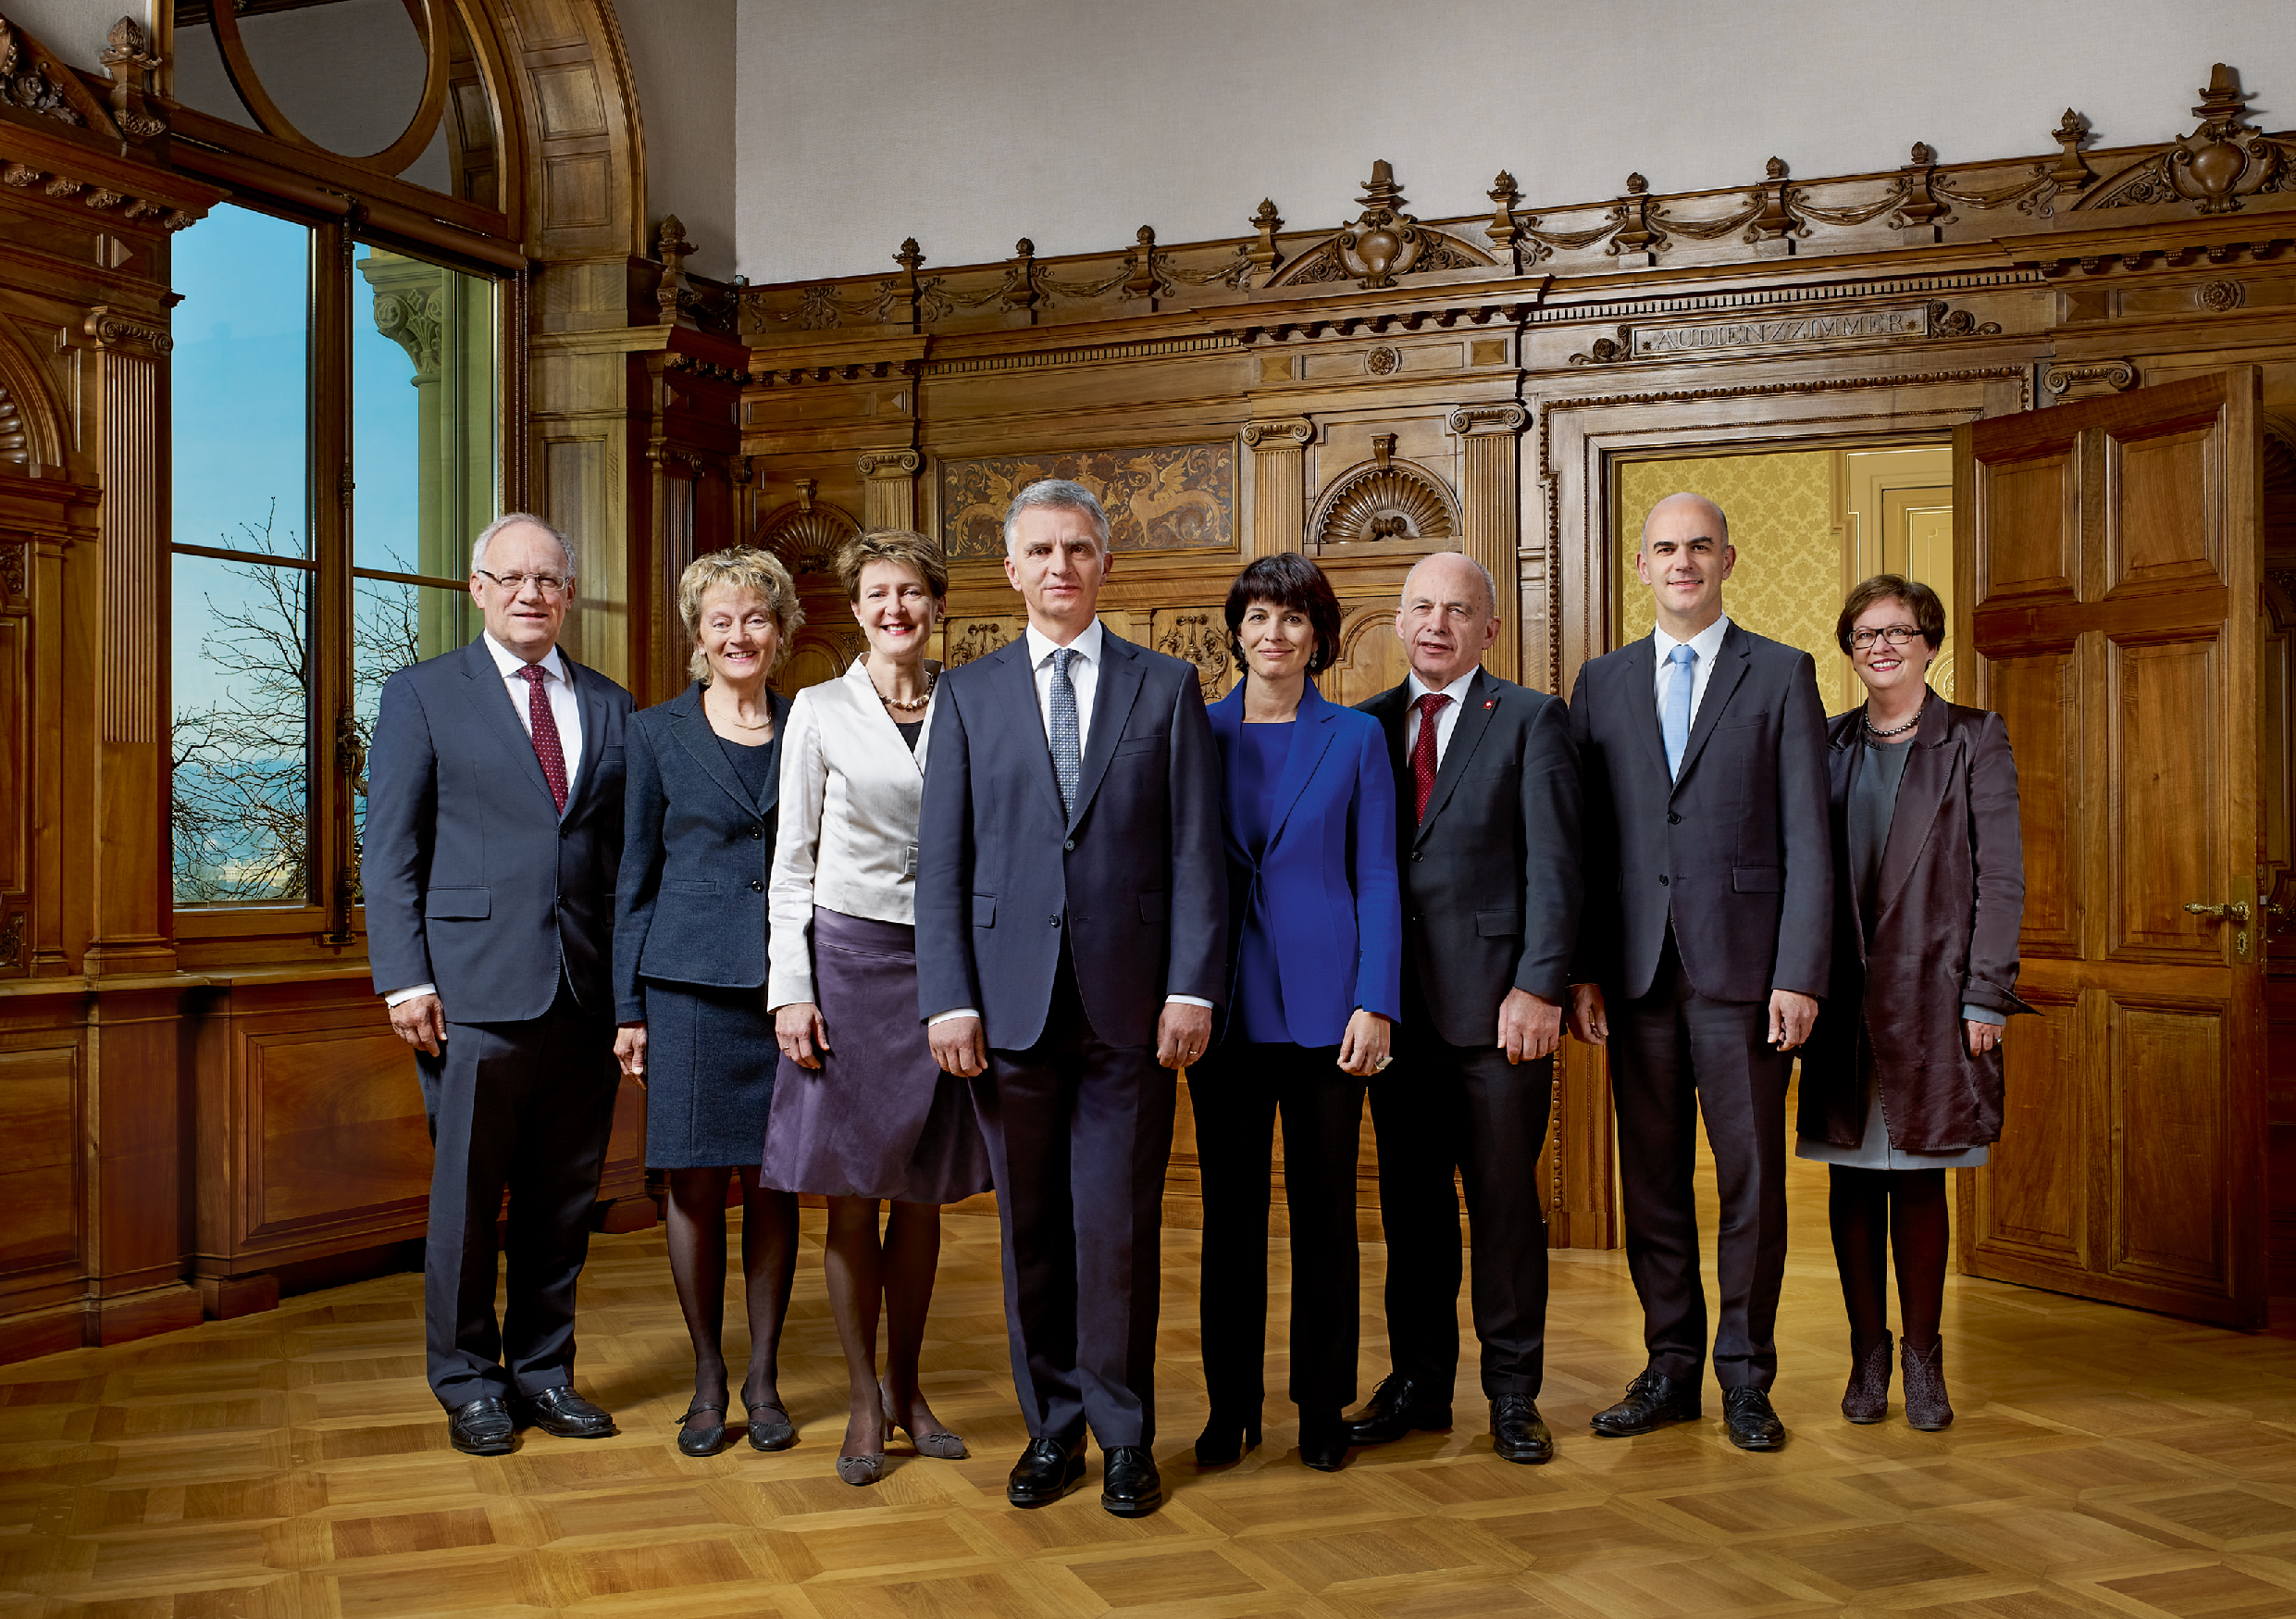 https://upload.wikimedia.org/wikipedia/commons/e/e9/Bundesrat_der_Schweiz_2014.jpg